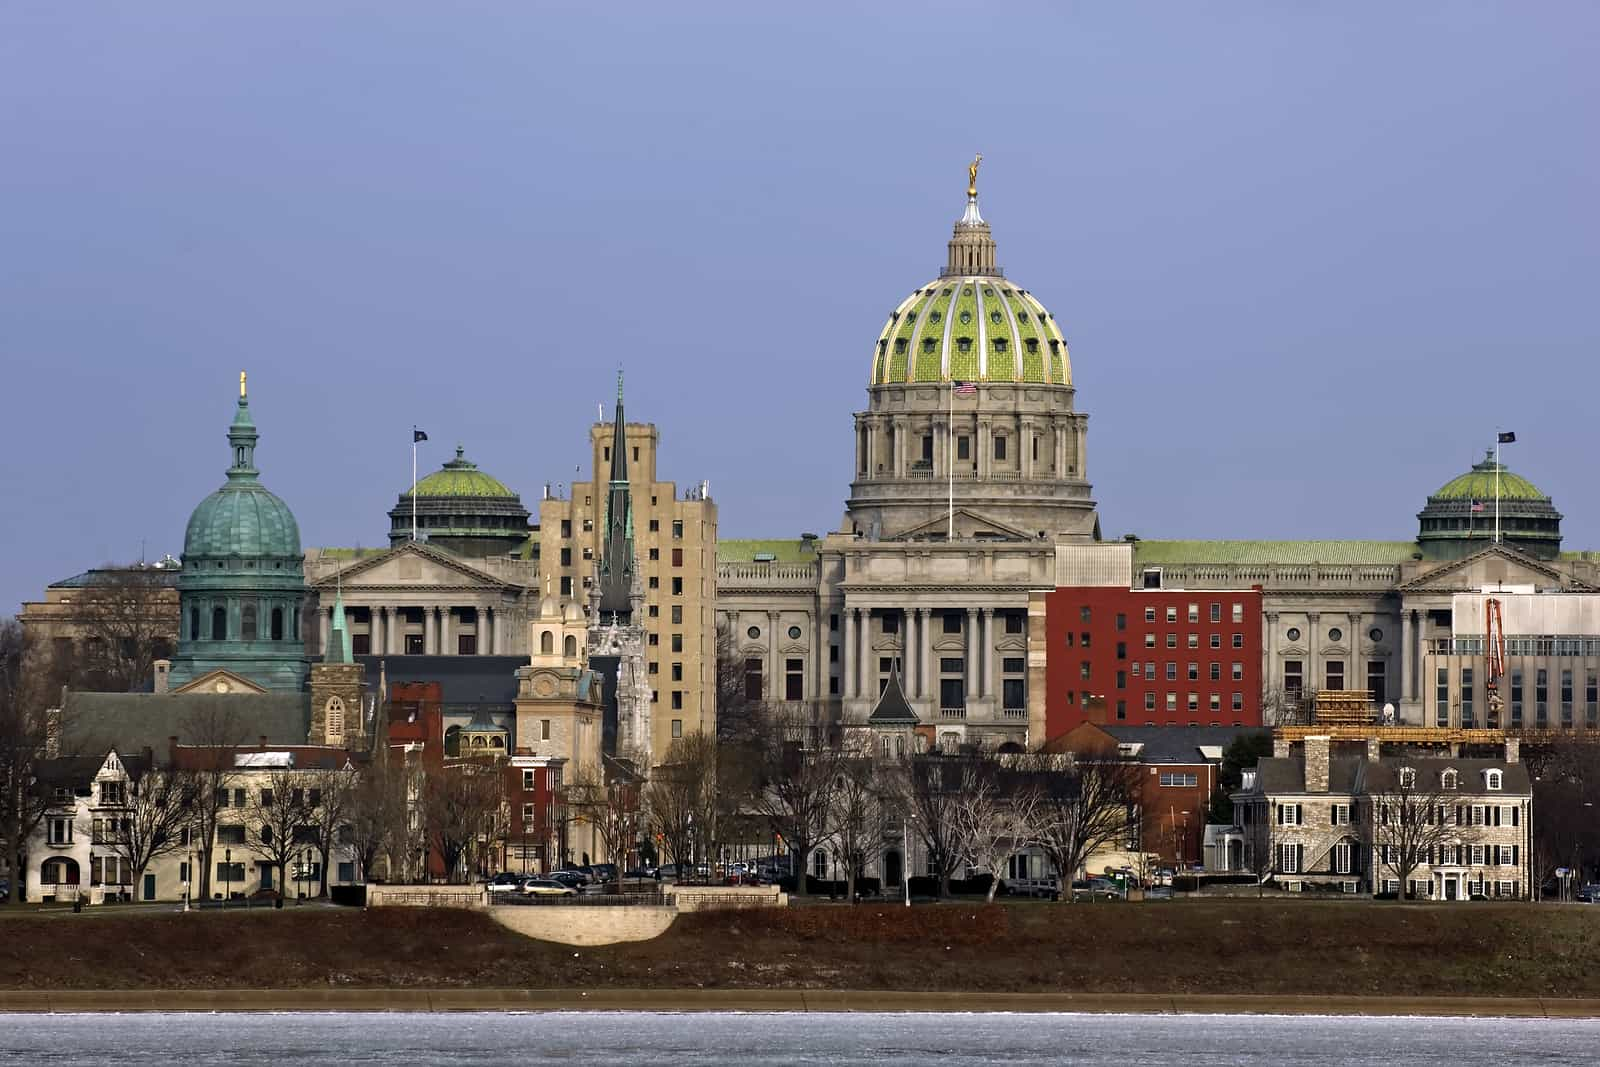 Pennsylvania Attorney General Shapiro Opposes Re-Accreditation of For-Profit College Agency